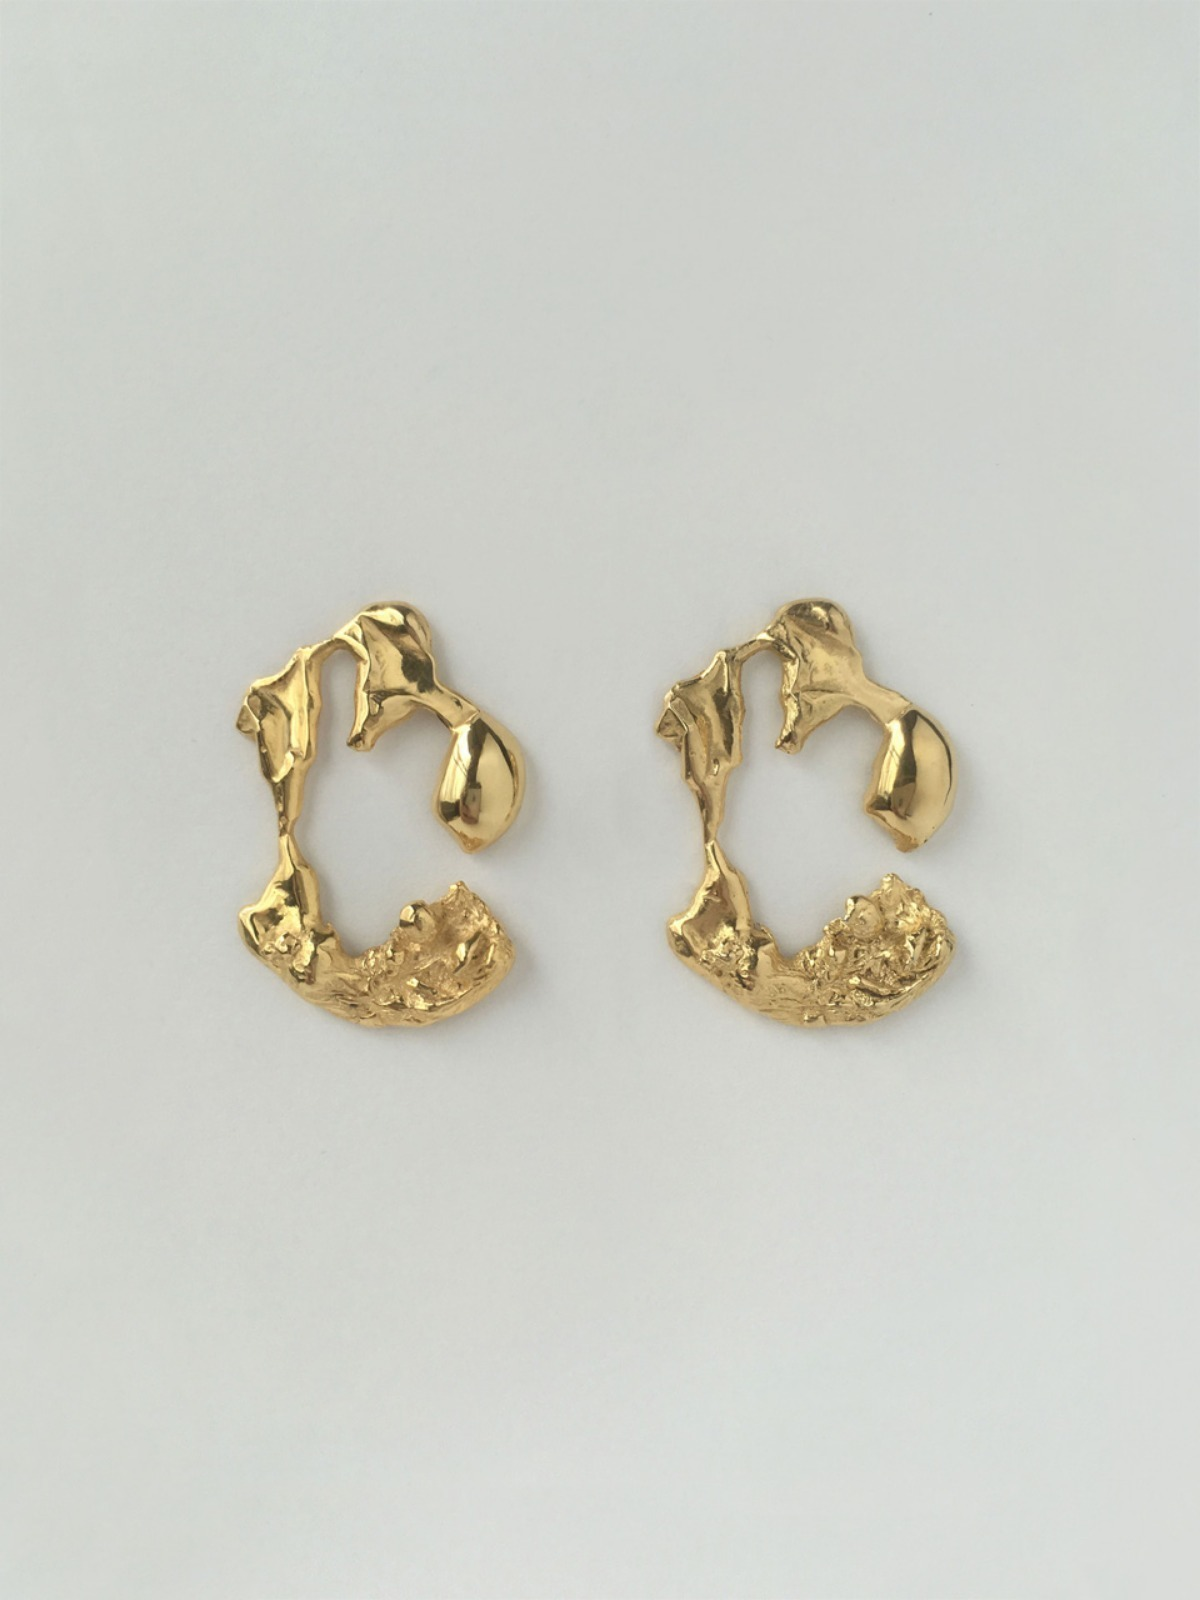 Melting C earring